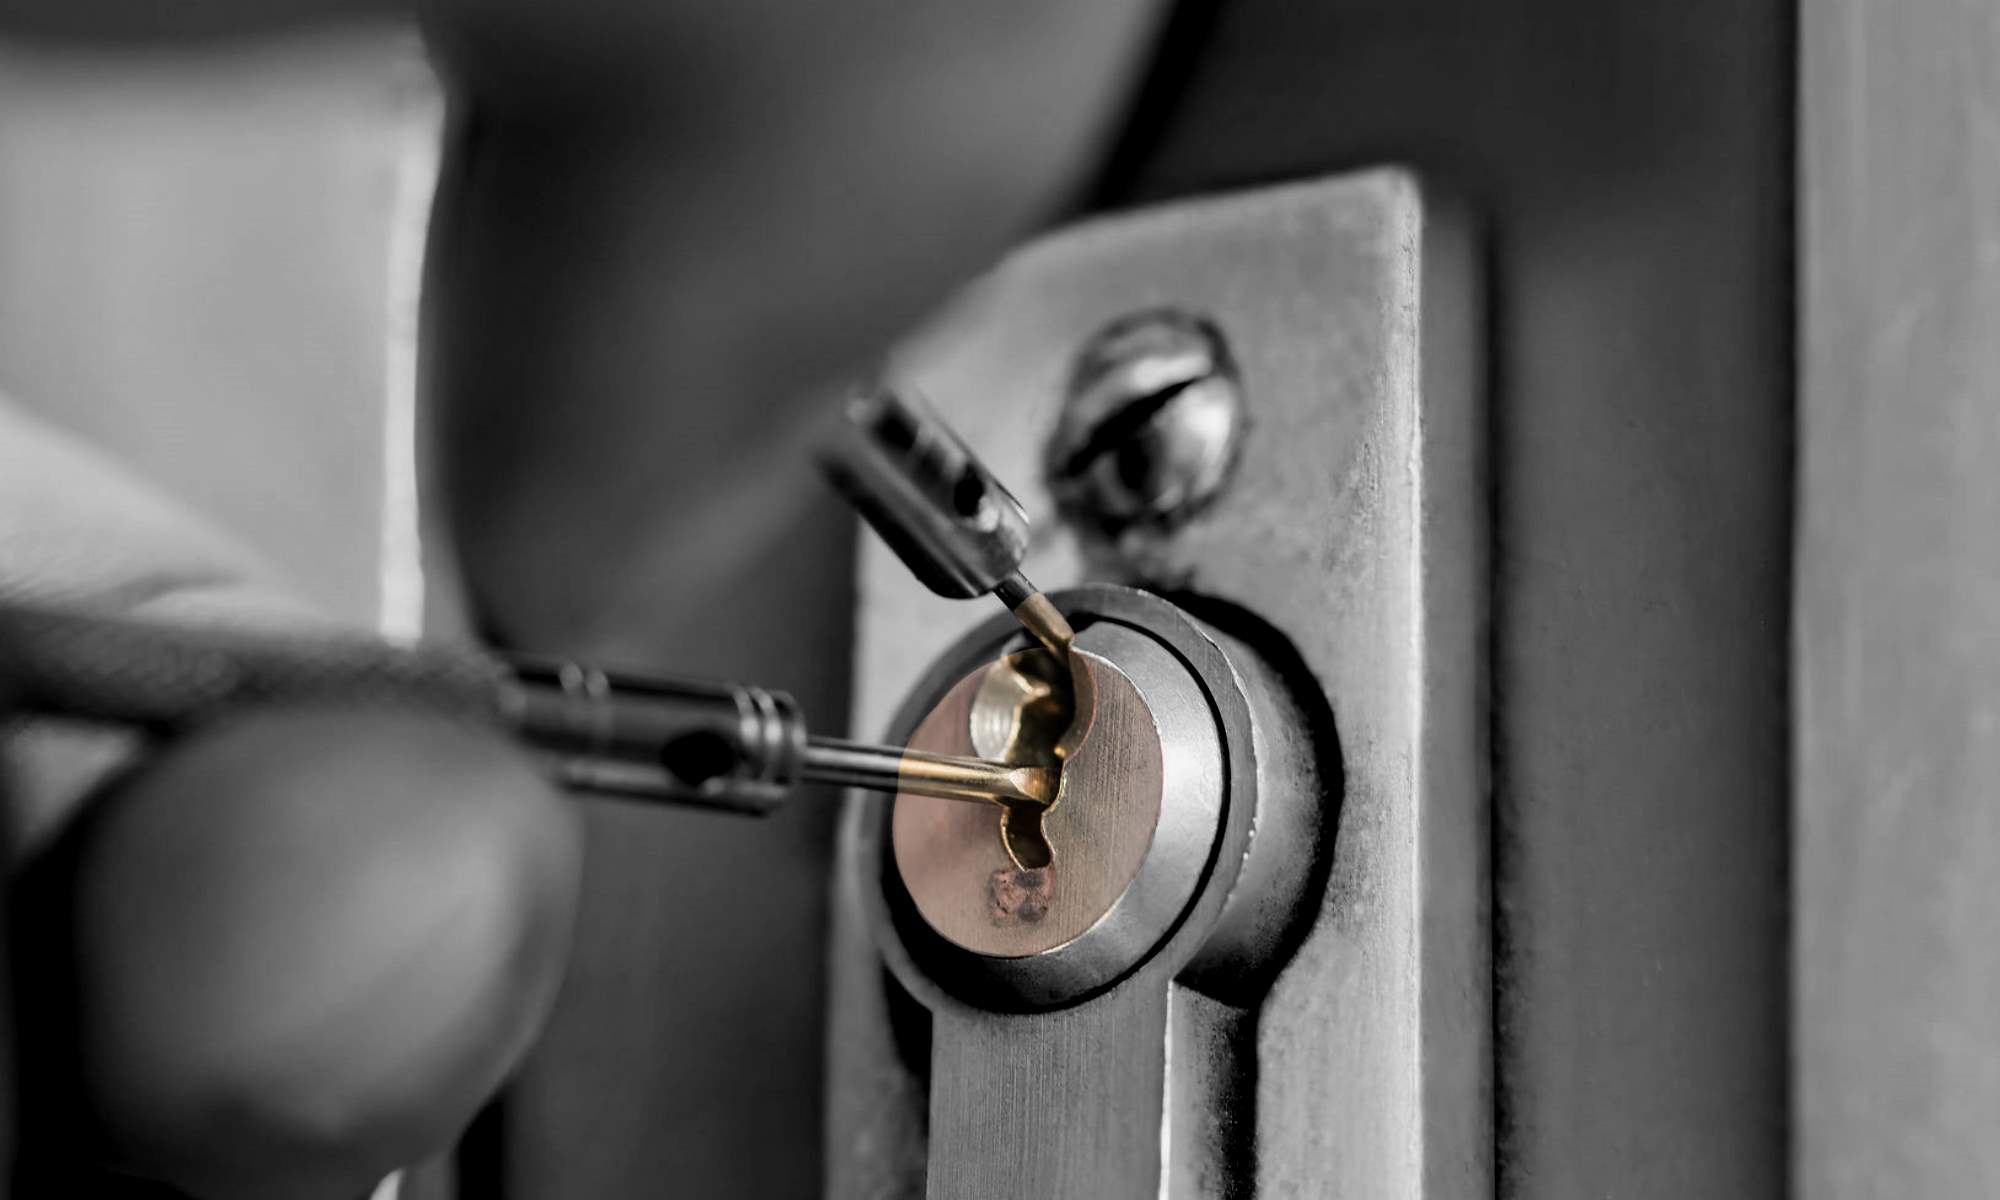 Locksmith in Brisbane